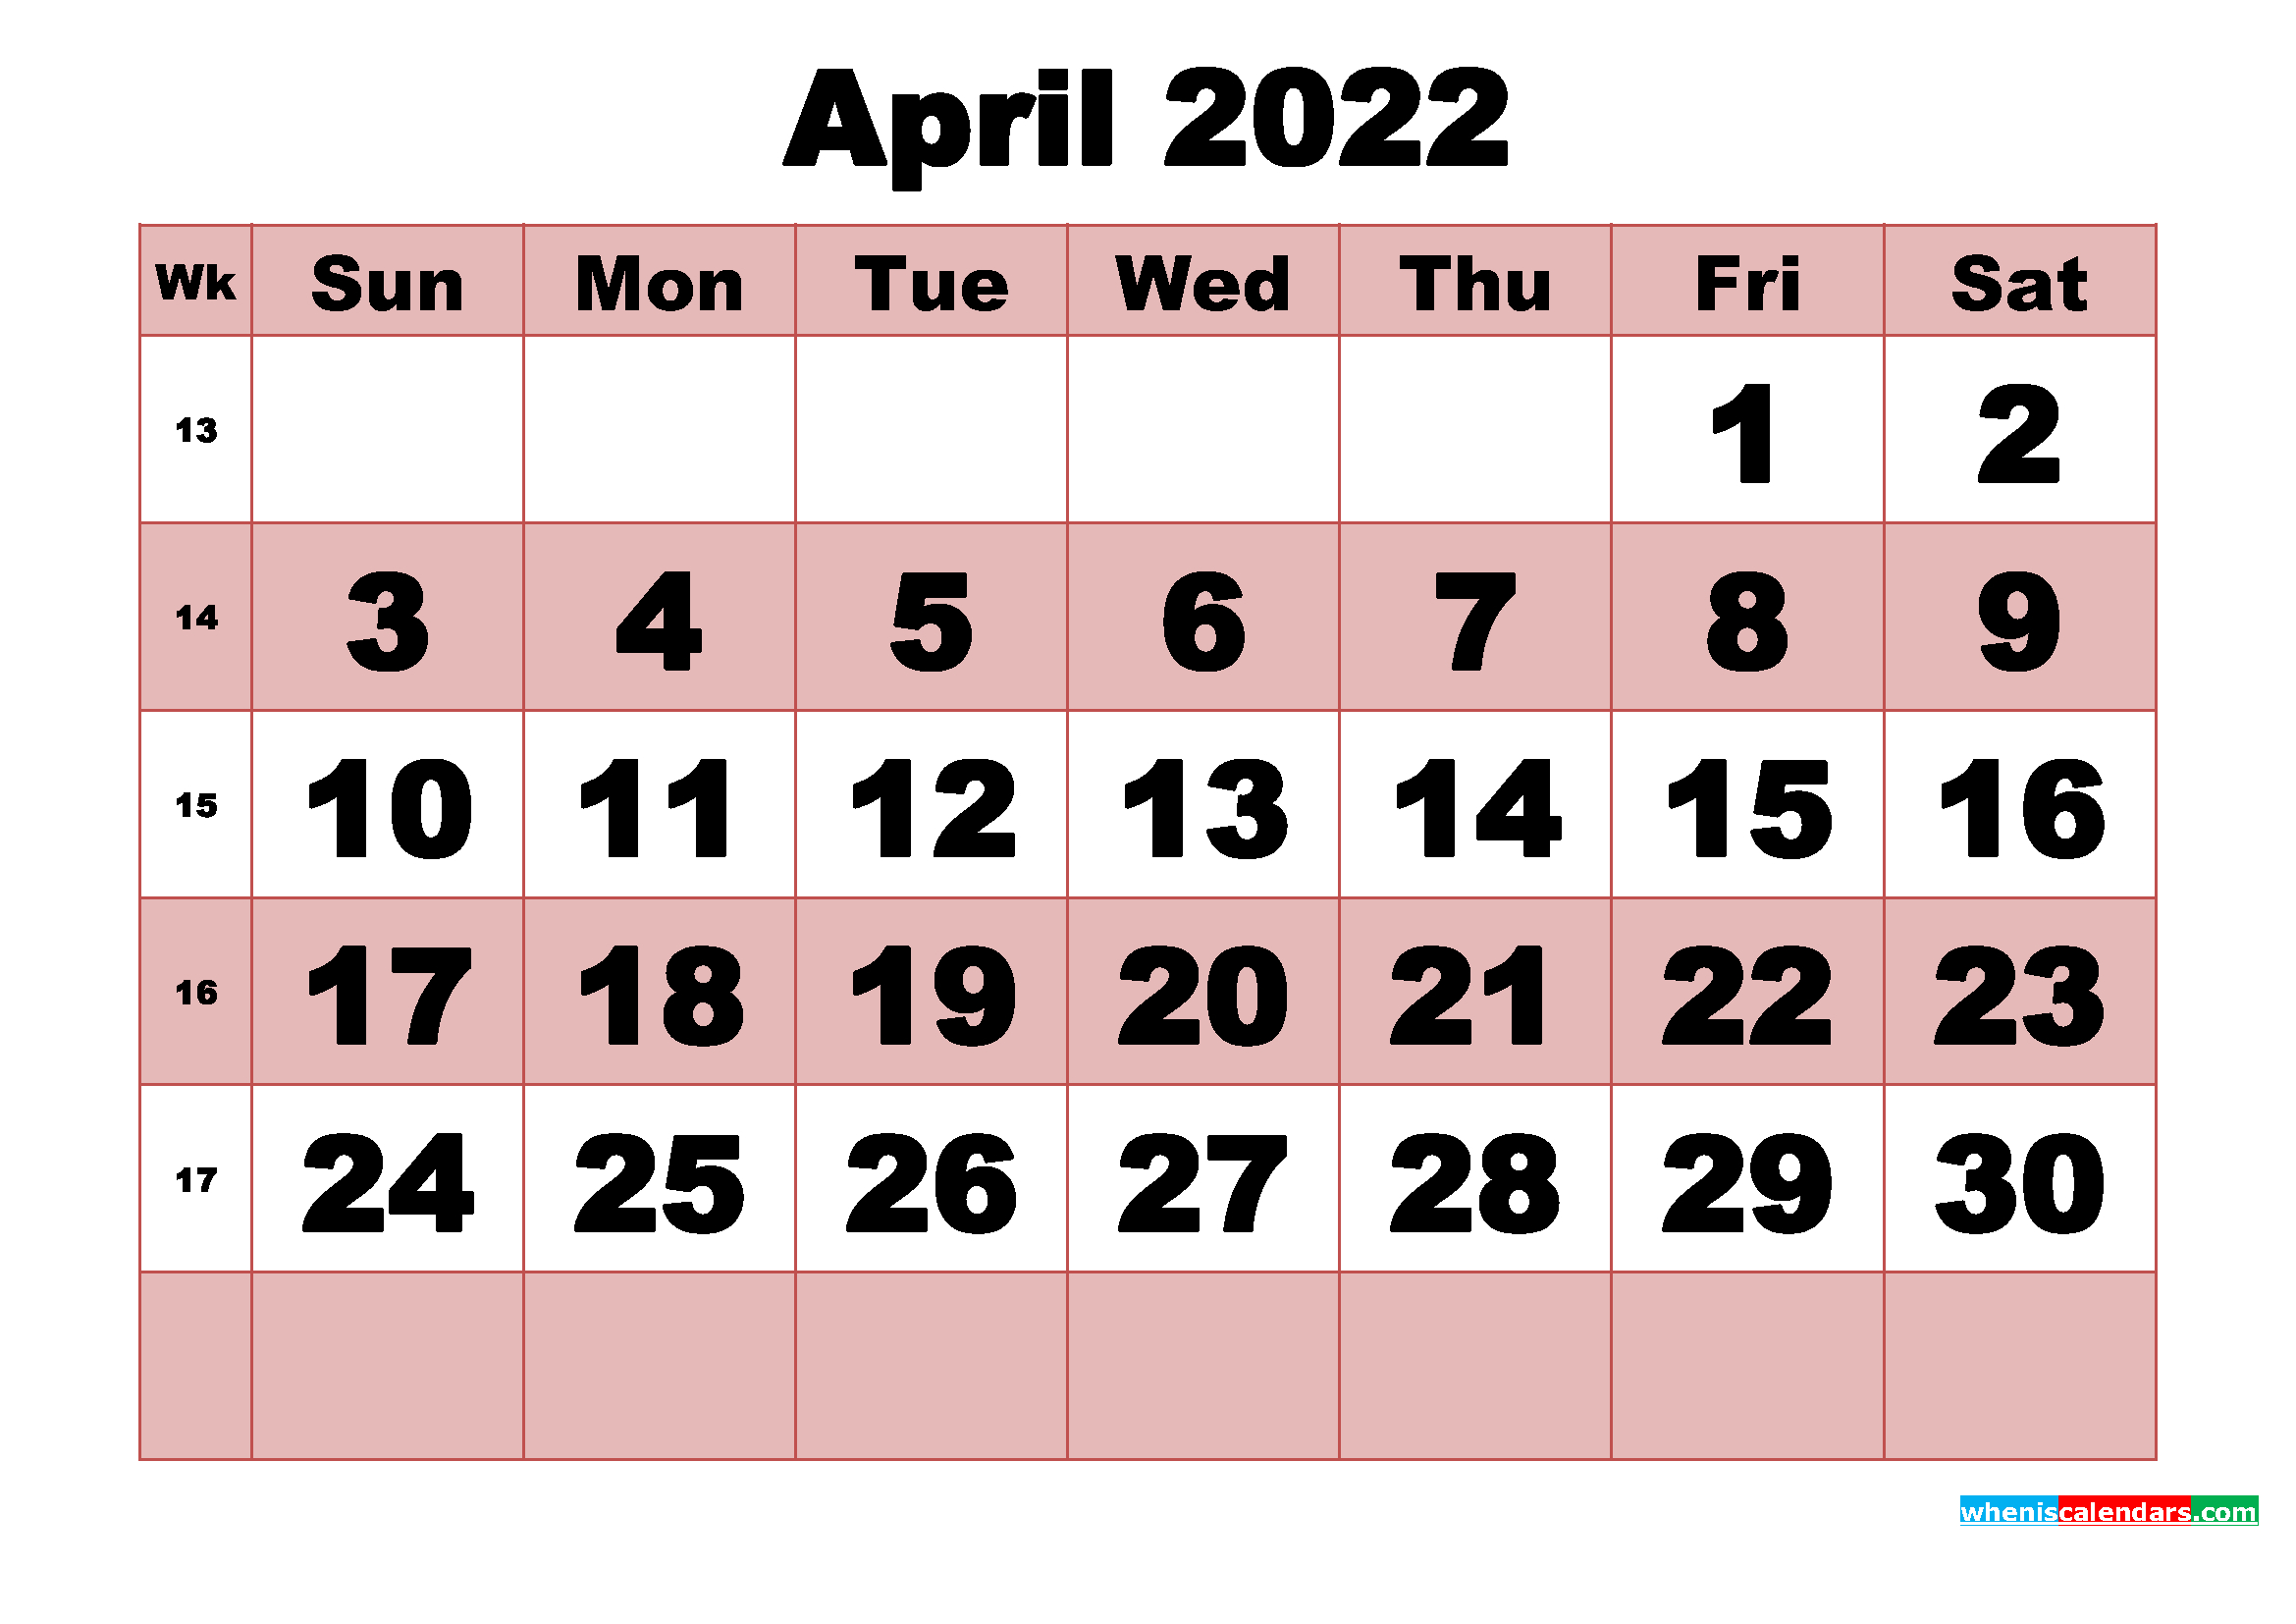 Free Printable Monthly Calendar April 2022 intended for Printable Calendar April 2022 Free Photo